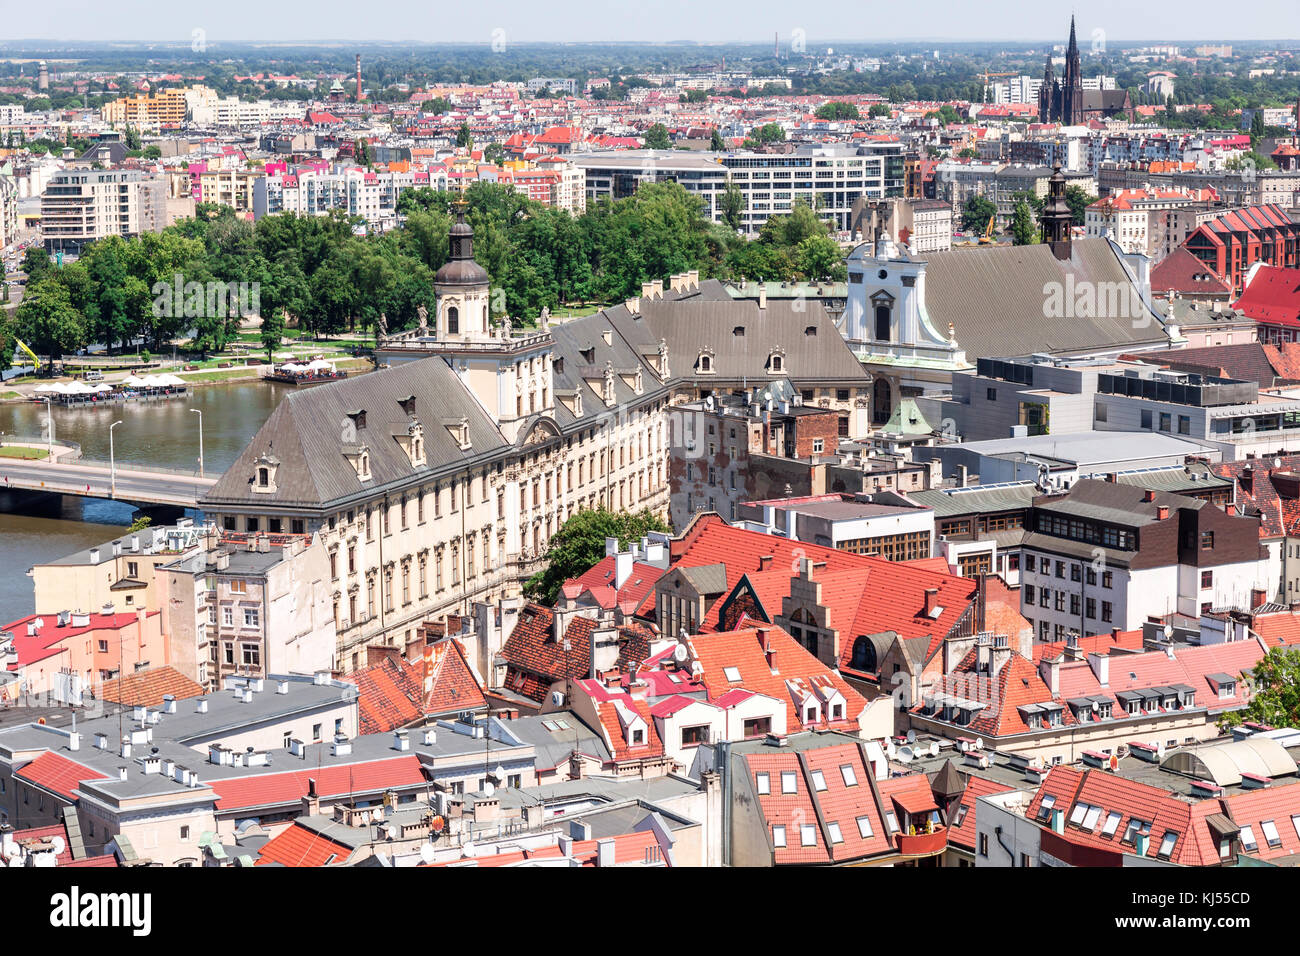 Sights of Poland. Breslau Old Town. - Stock Image